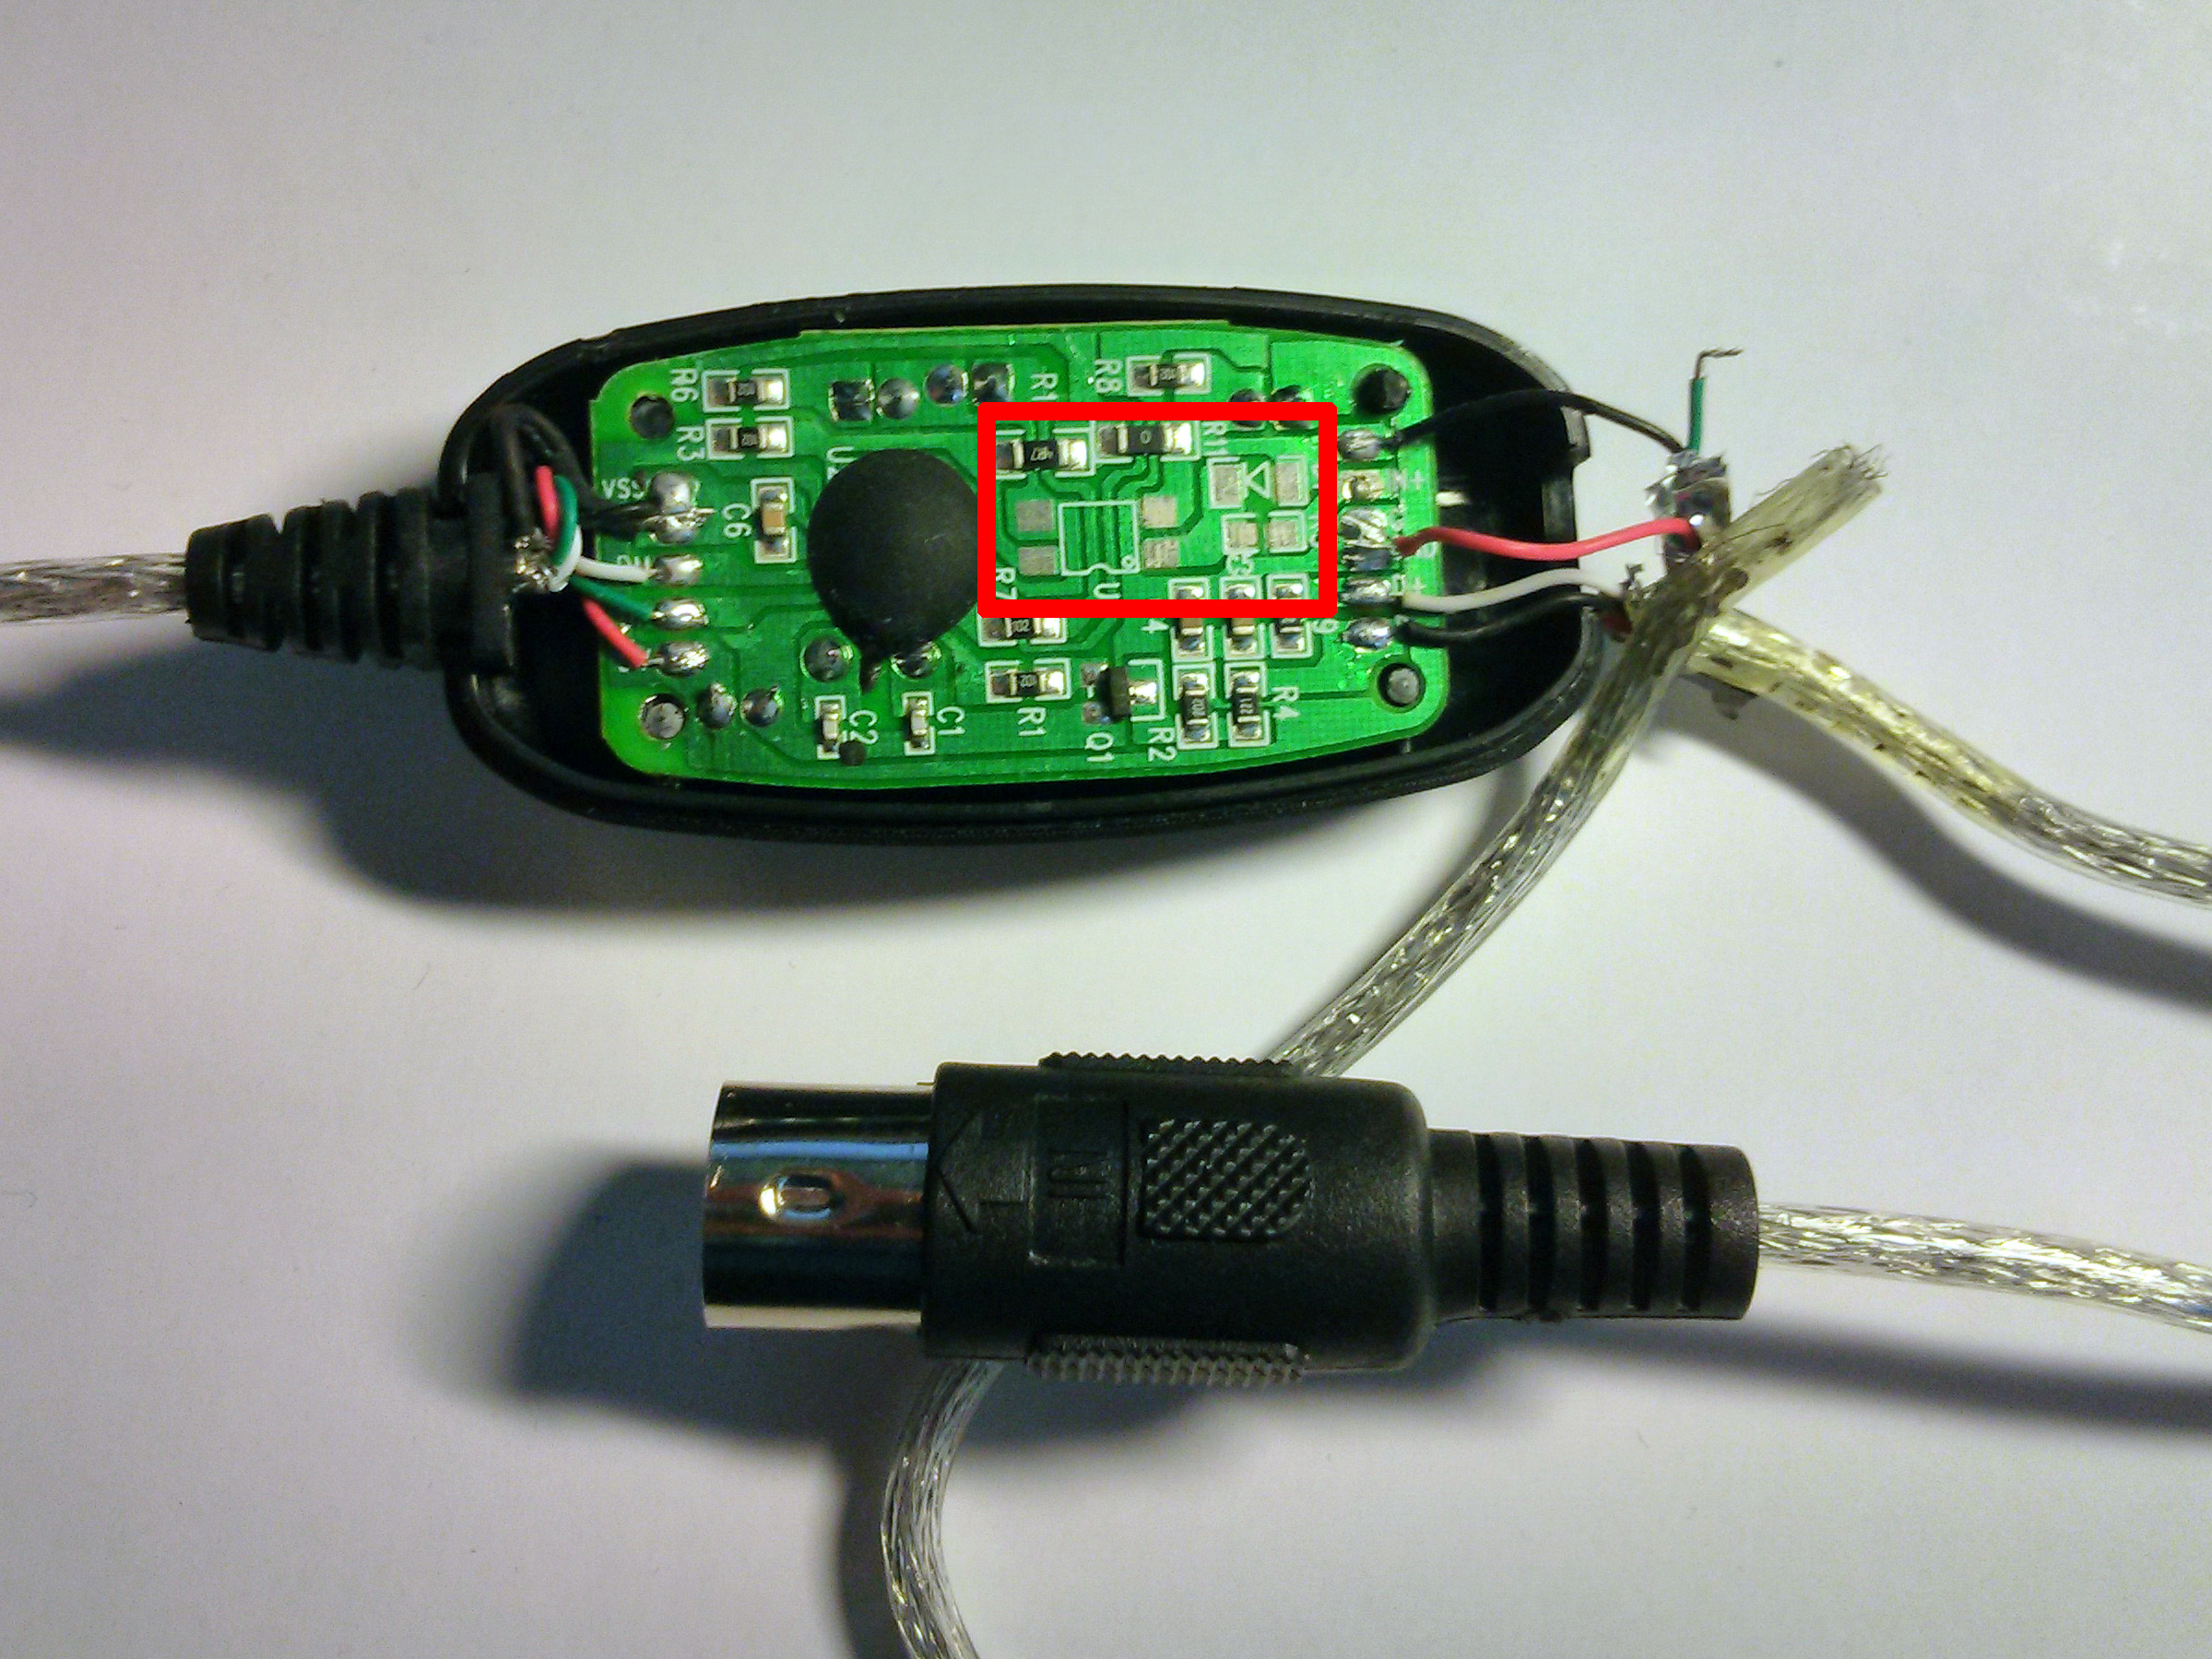 Cheap Usb Midi Cable: Some Self Assembly May Be Required – Arvydas.co.uk - Usb To Midi Cable Wiring Diagram